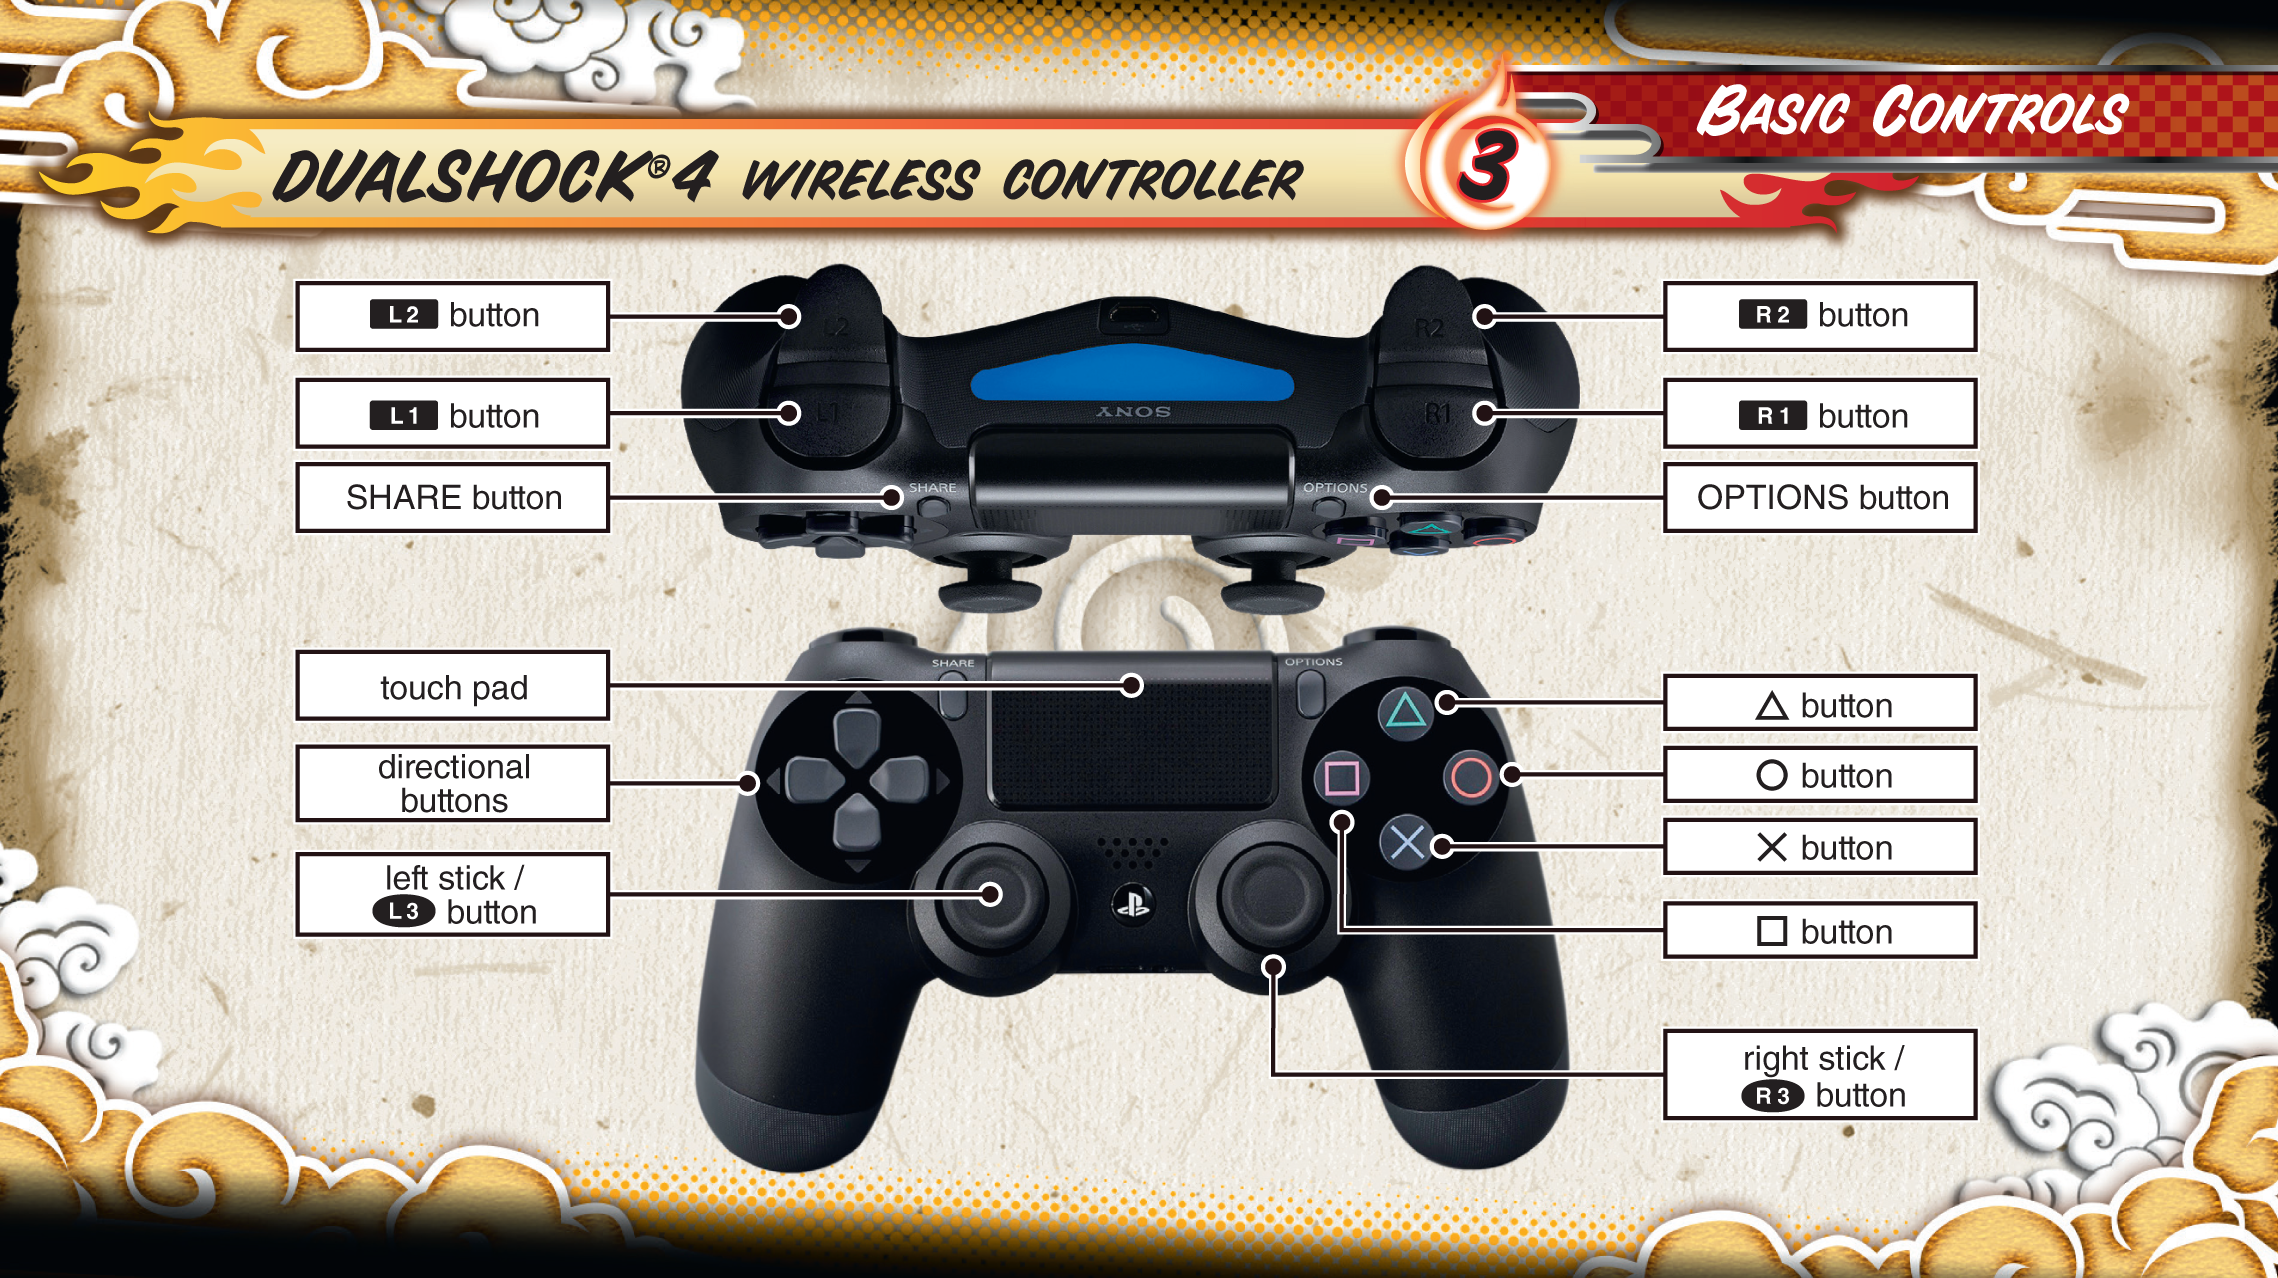 Dualshock 4 wireless controller for playstation 4, video game.